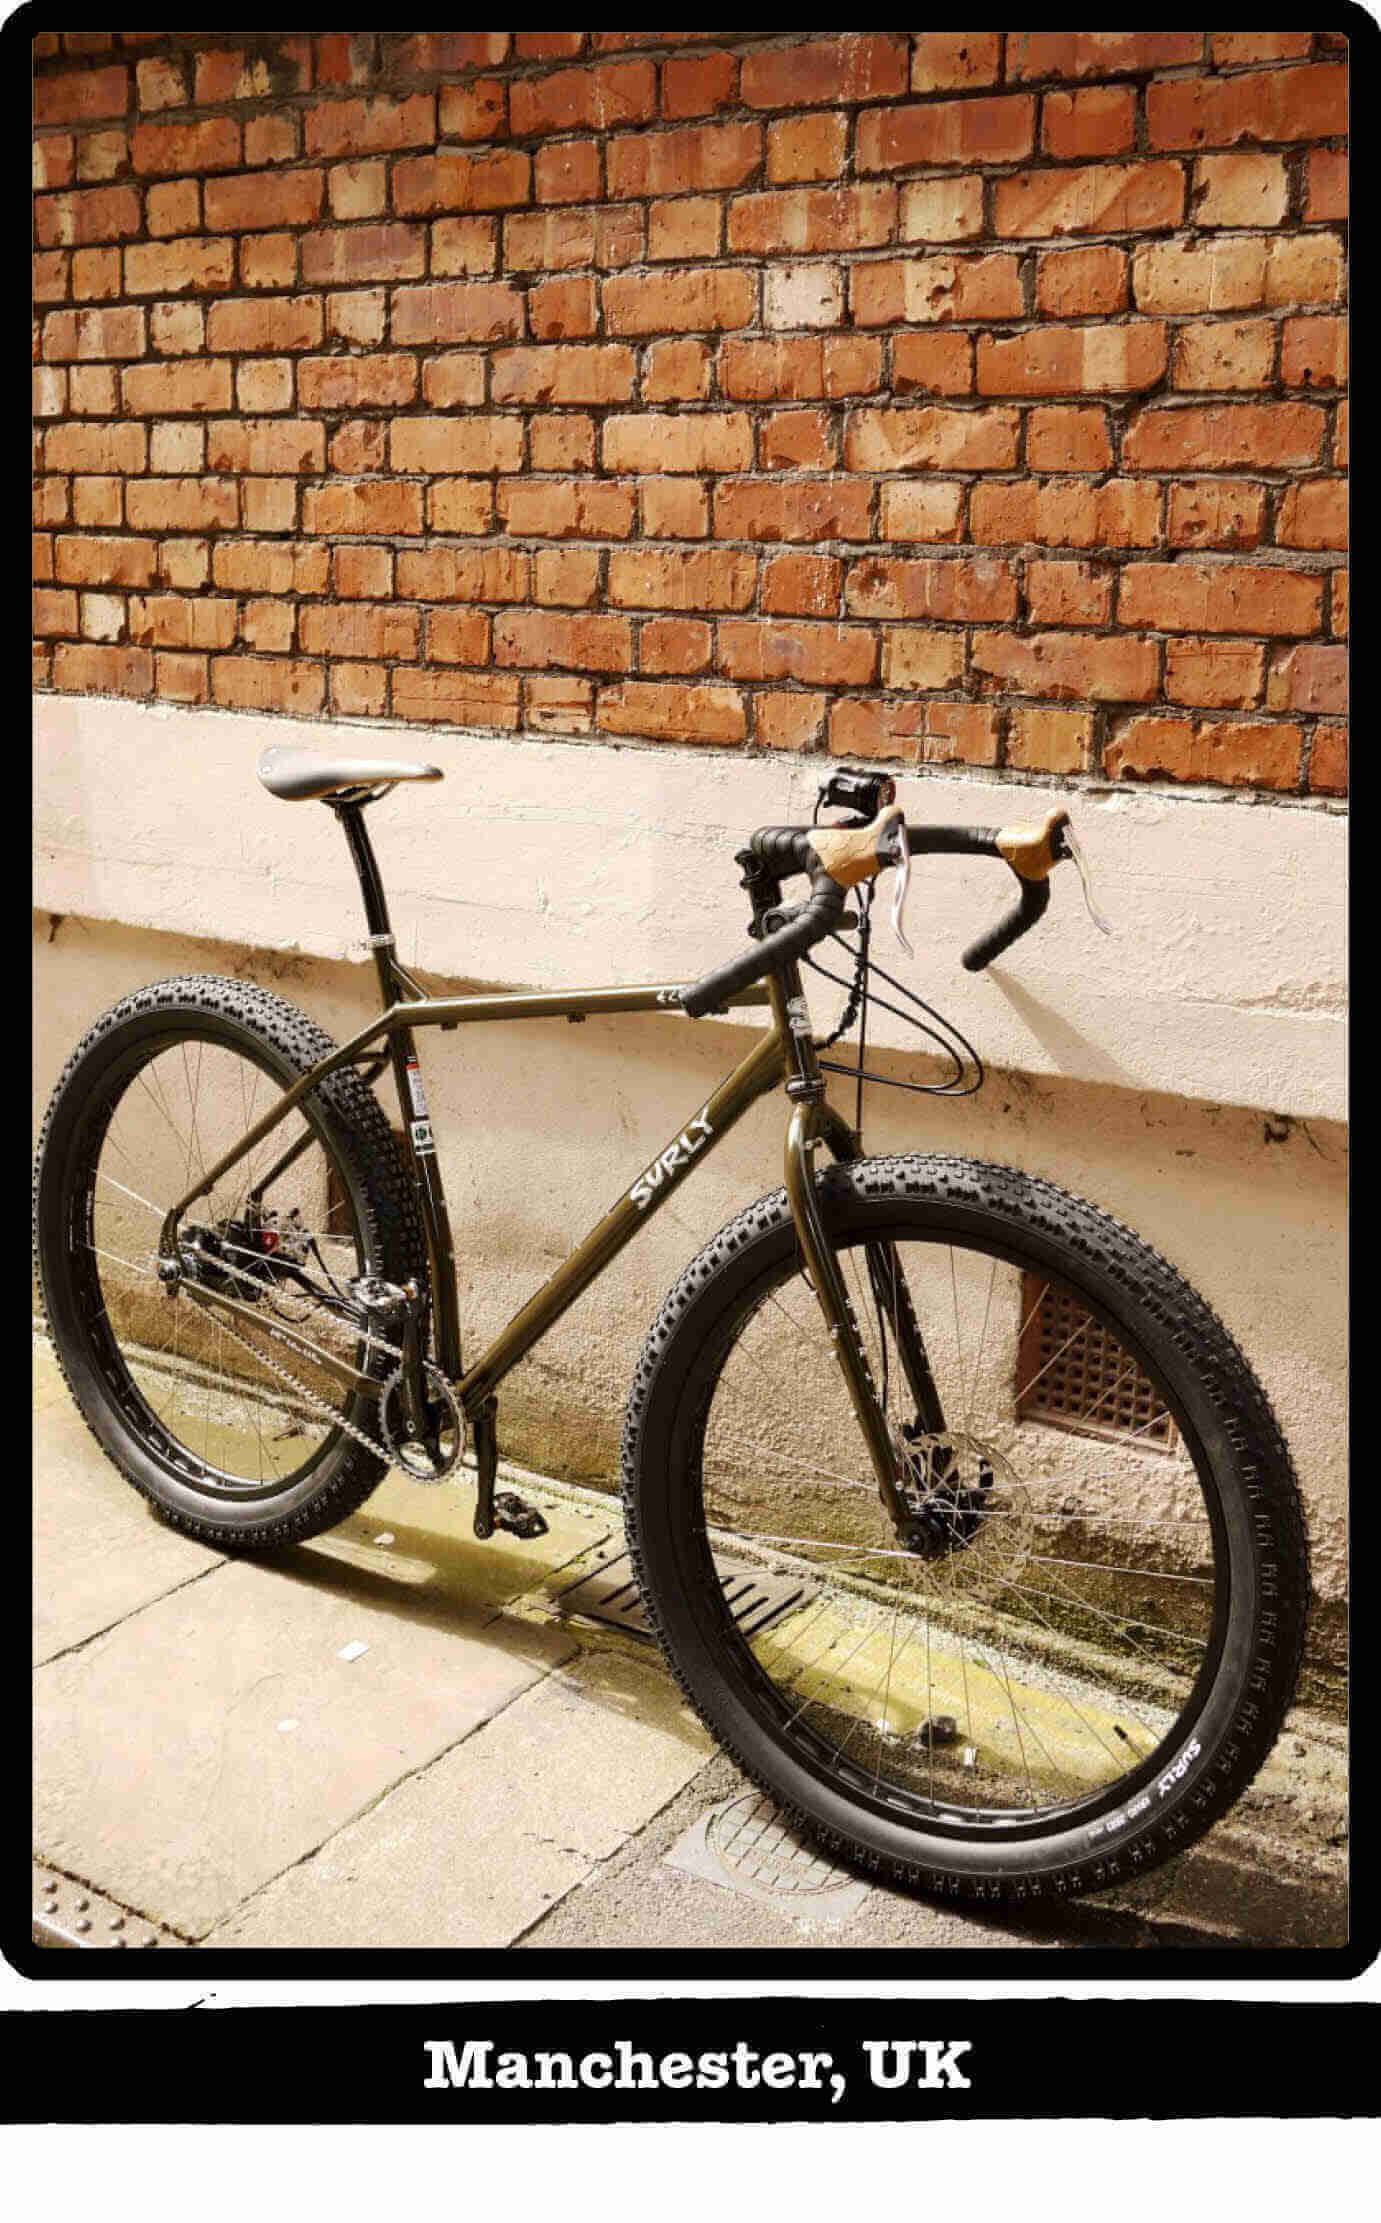 Right side view of a Surly ECR fat bike on sidewalk, leaning against a wall - Manchester, UK tag below image